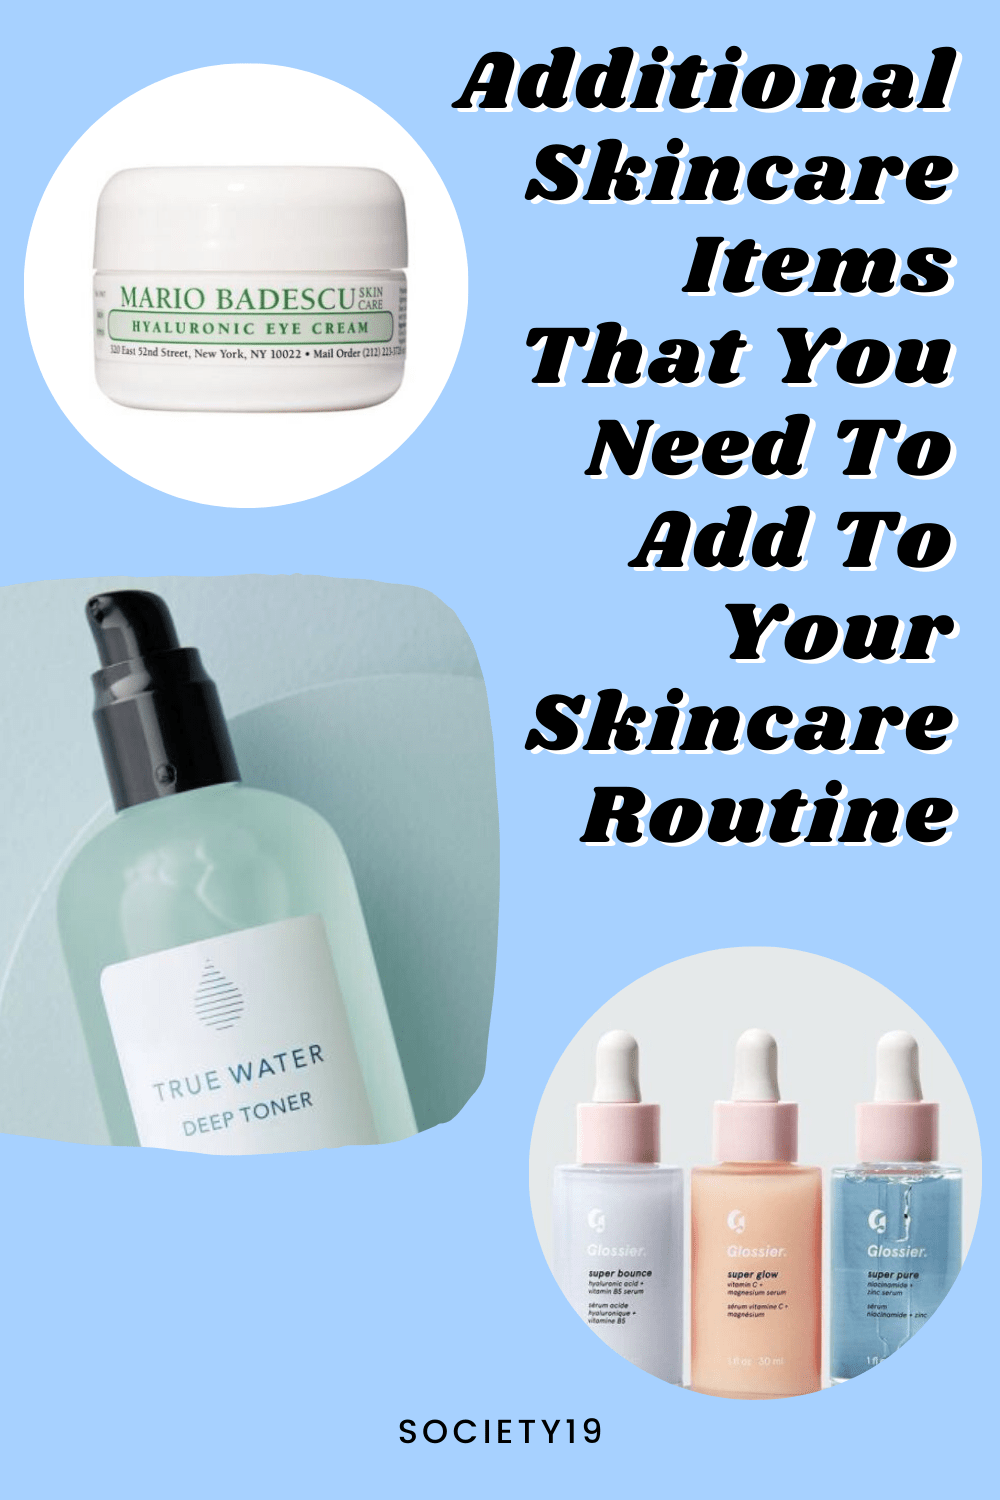 Additional Skincare Items That You Need To Add To Your Skincare Routine